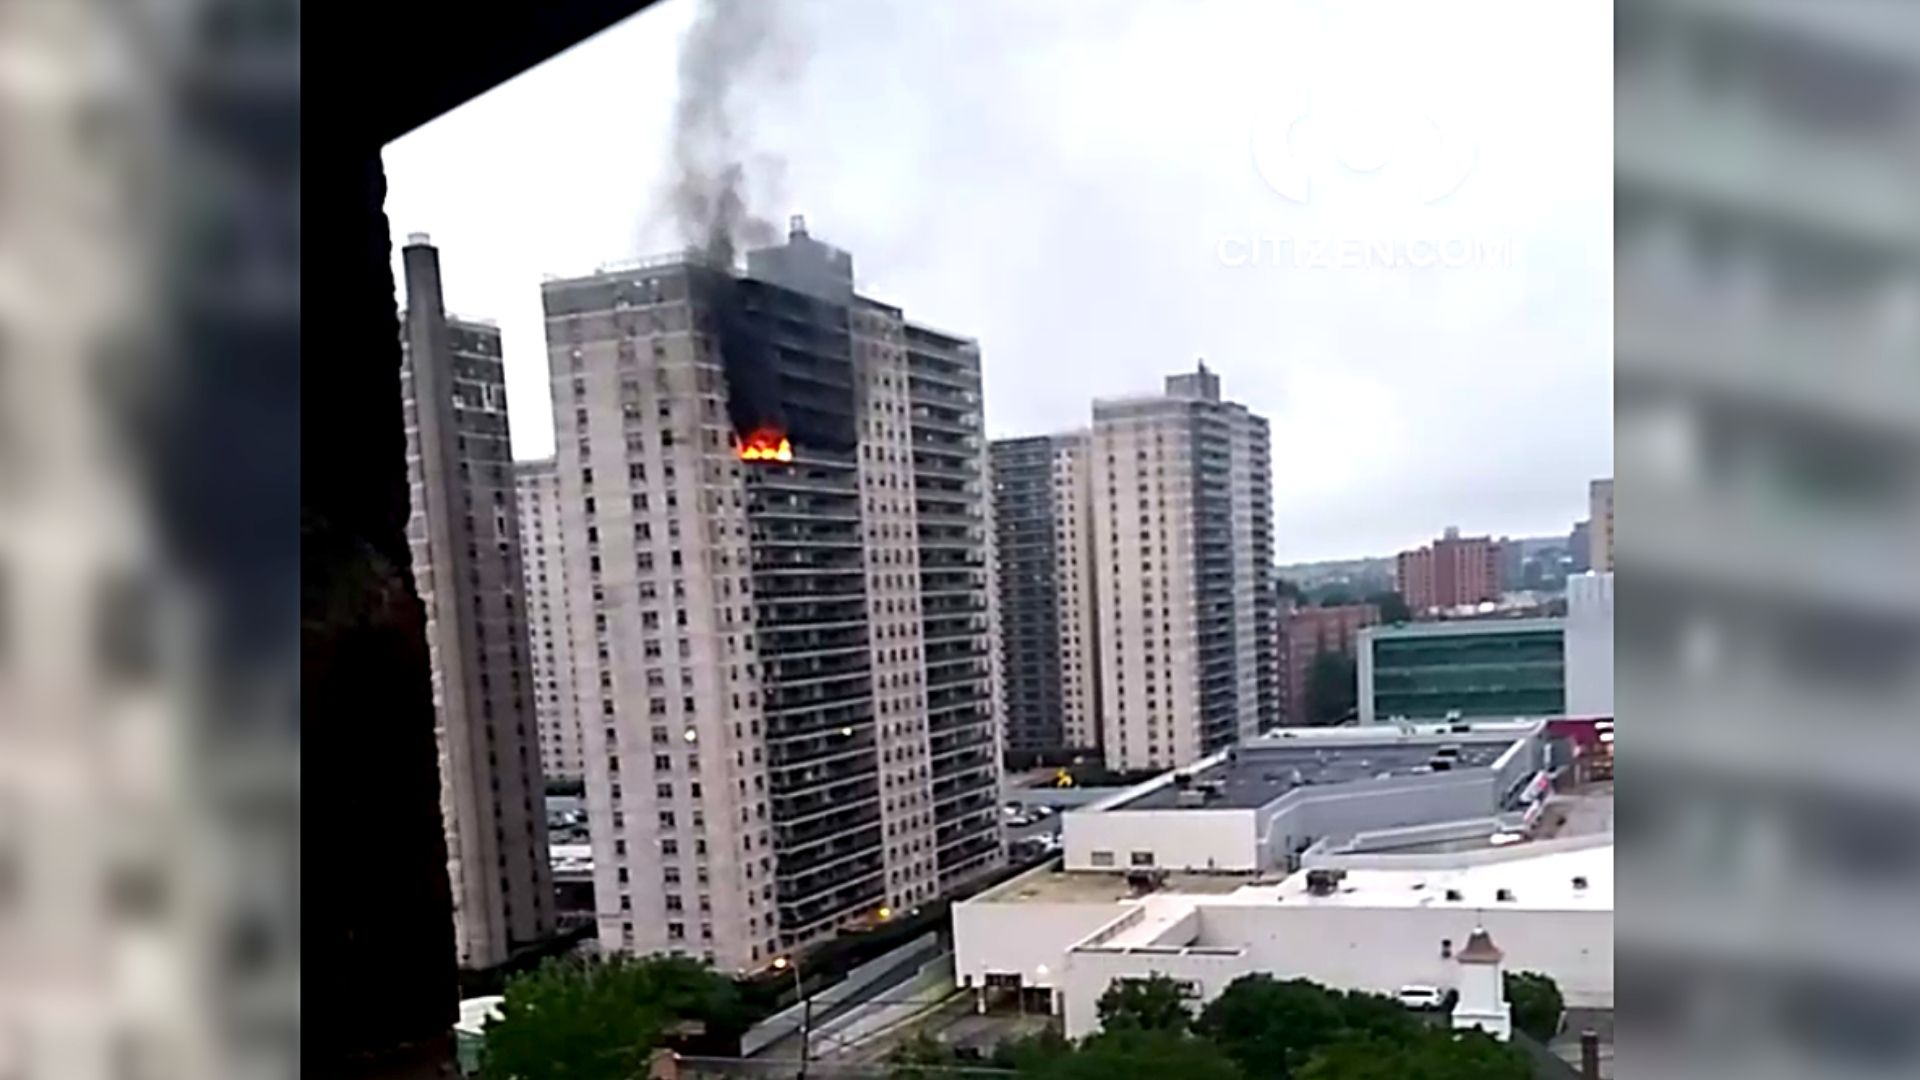 Fire at Concourse Village in the Bronx